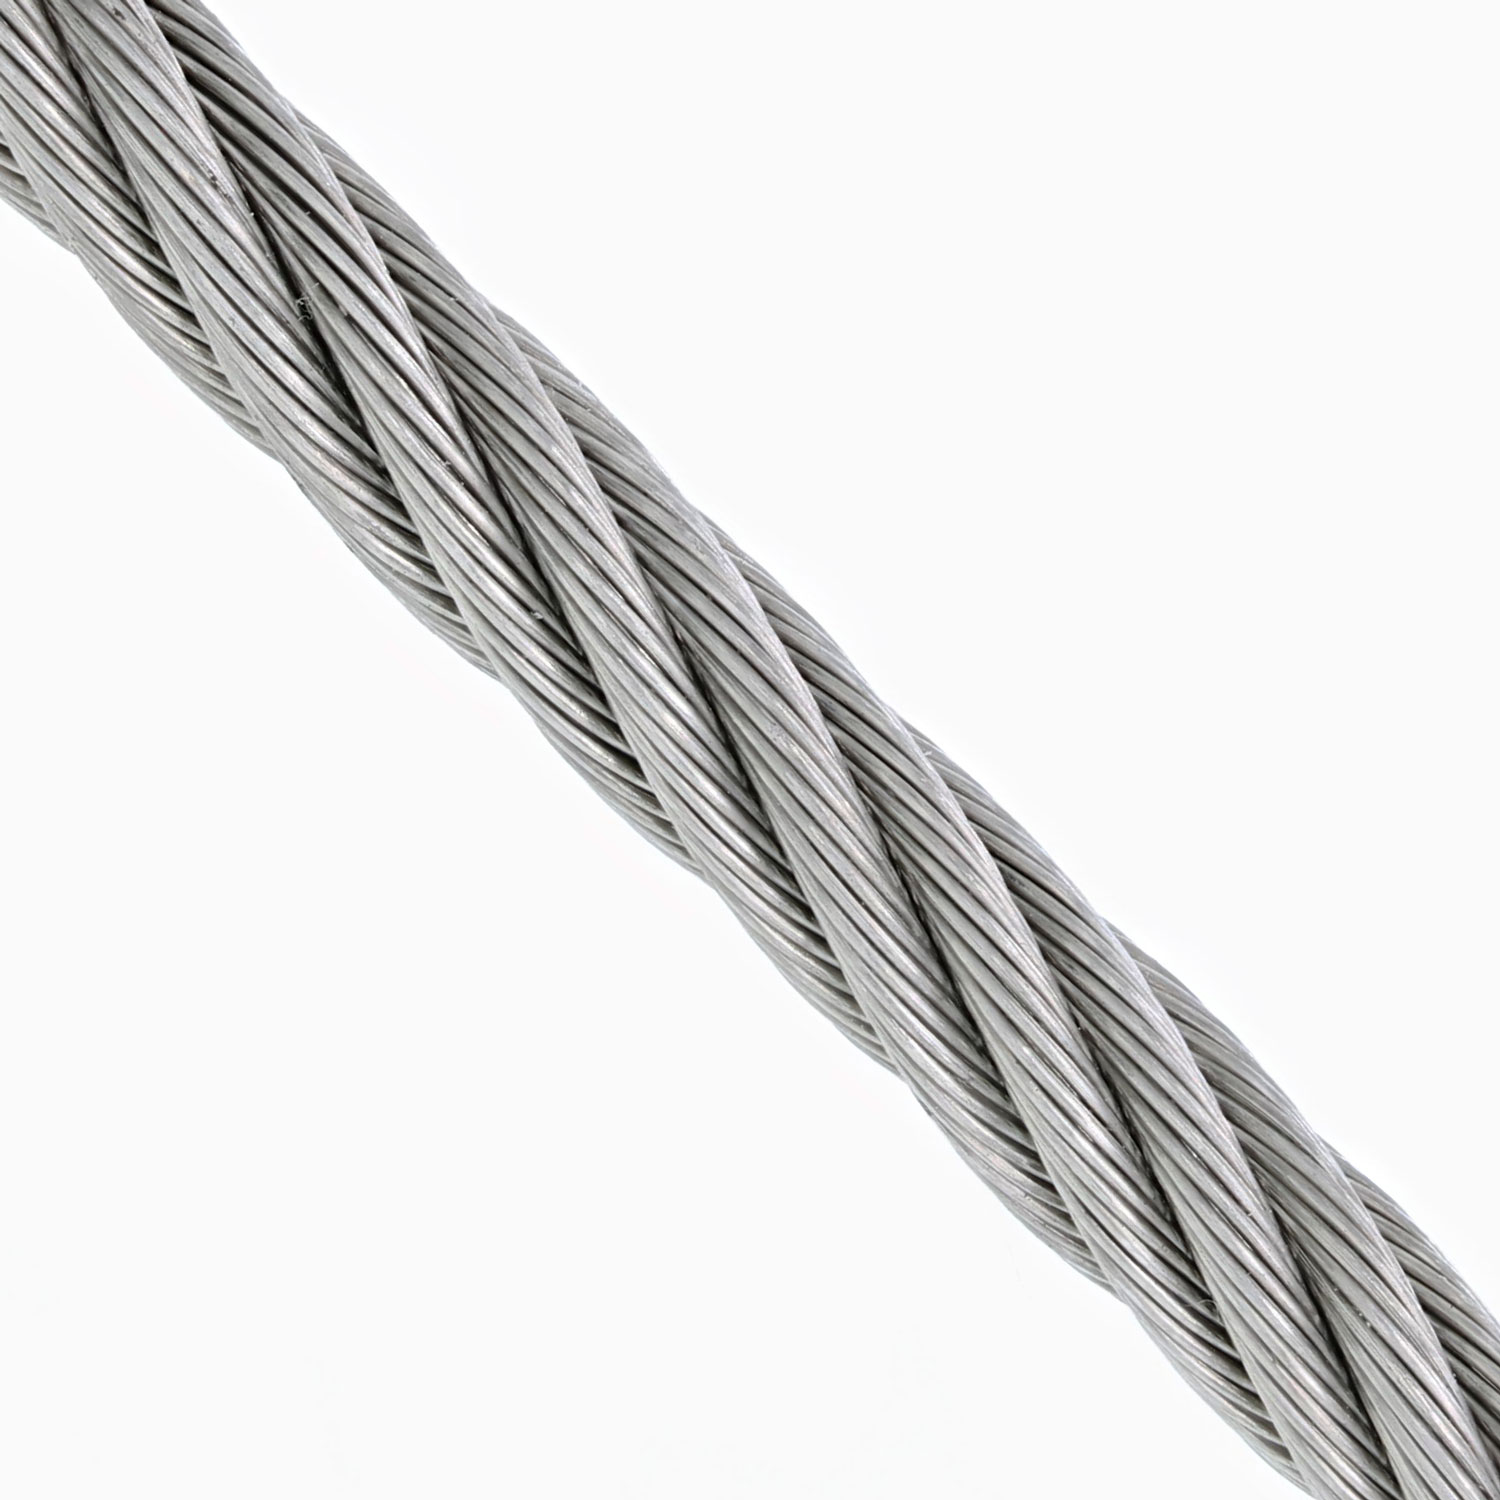 7 x 19 Type 316 Stainless Steel Cable